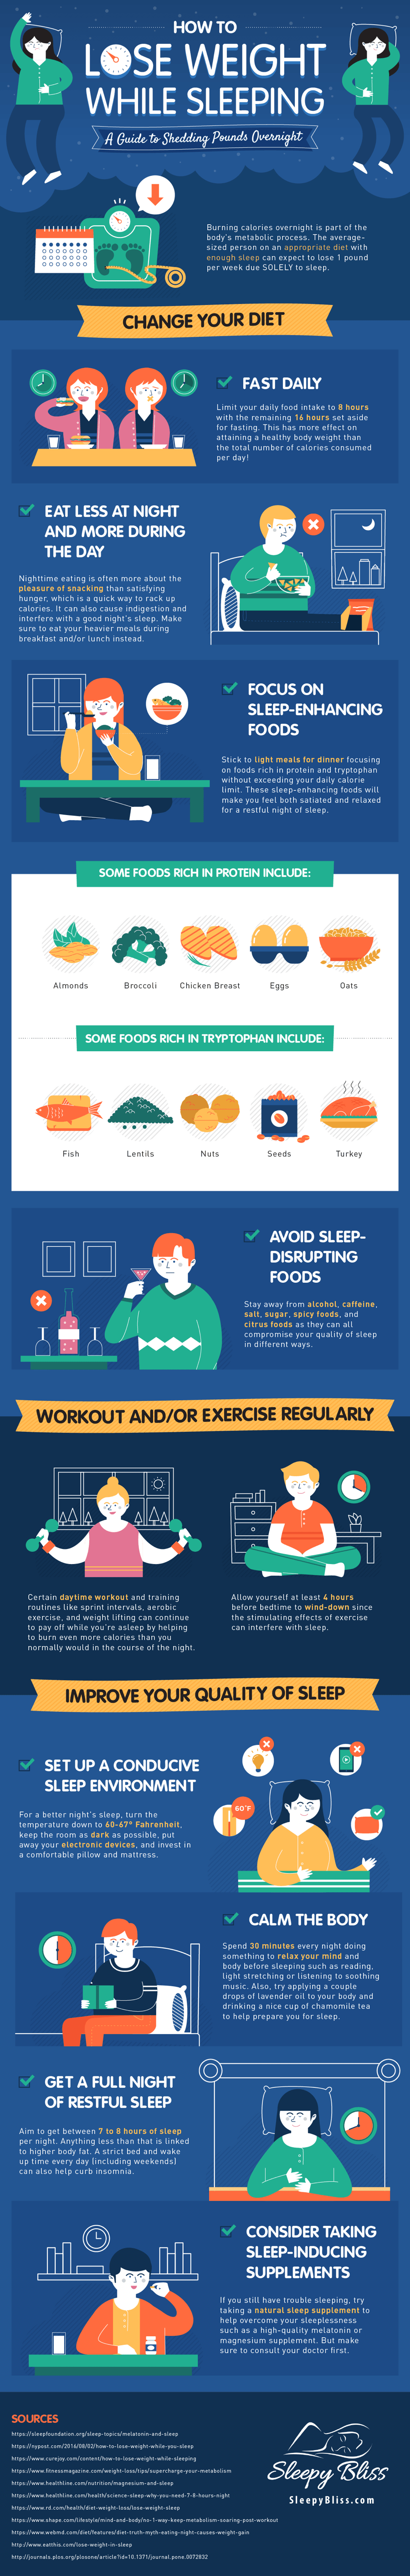 How To Lose Weight While Sleeping [Infographic]